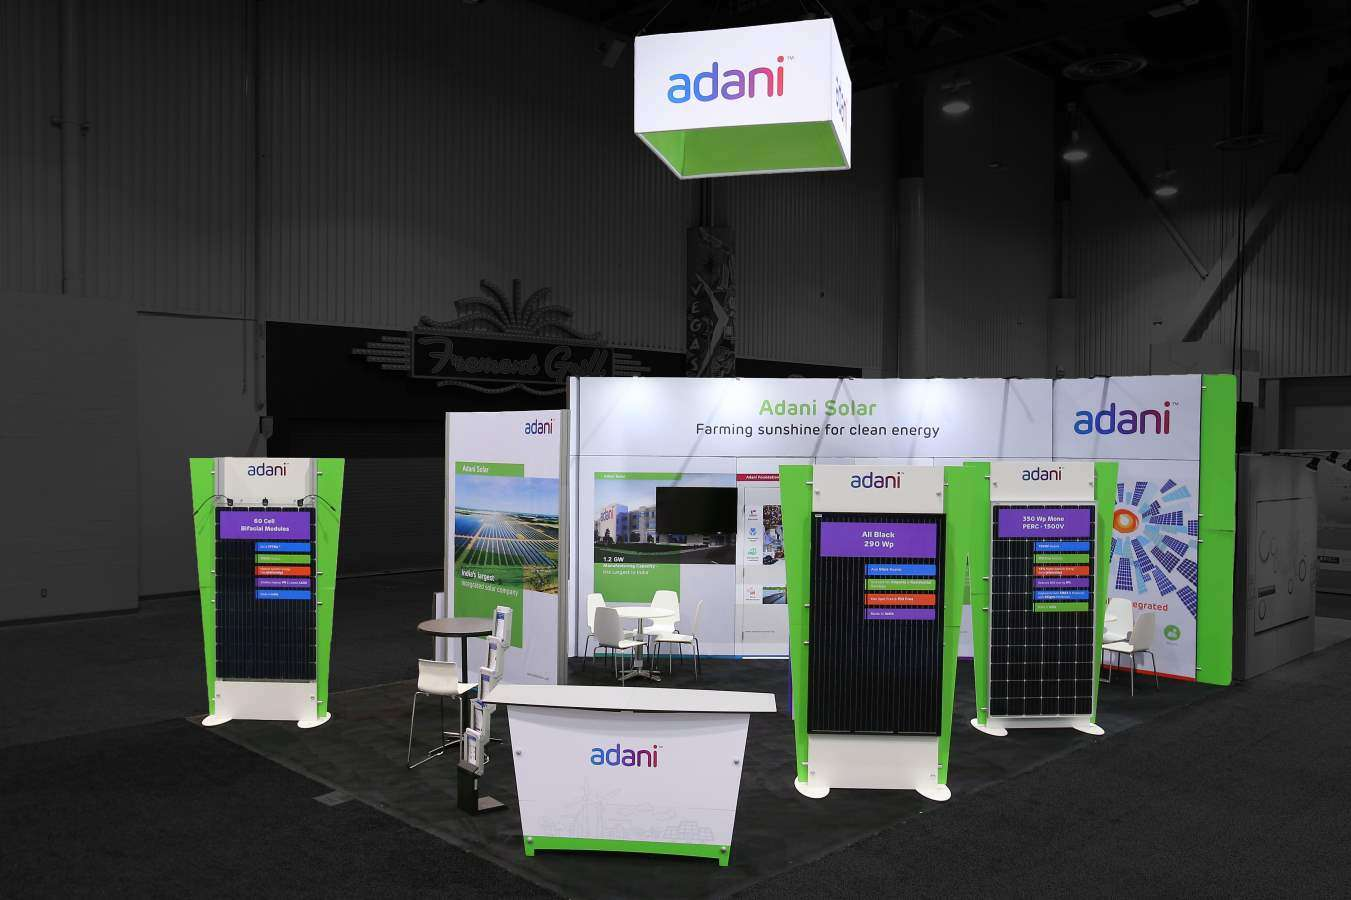 20x30 rental booth for Adani Solar at Solar Power International , las vegas